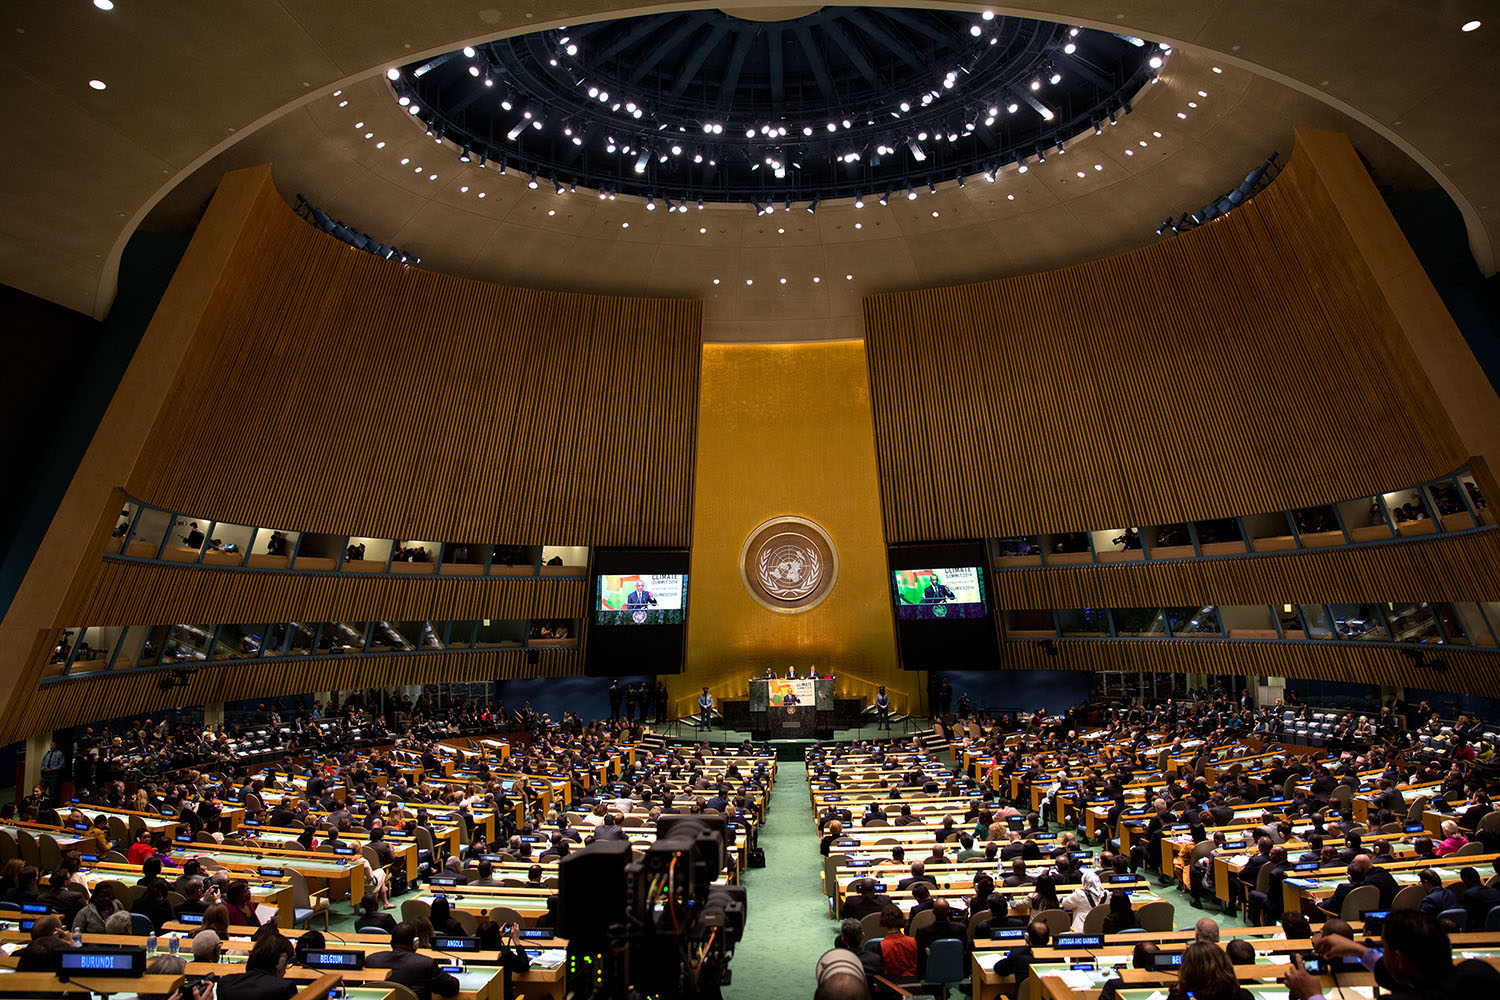 UNGA Climate Summit 2014 in the General Assembly Hall at the_United Nations in New York